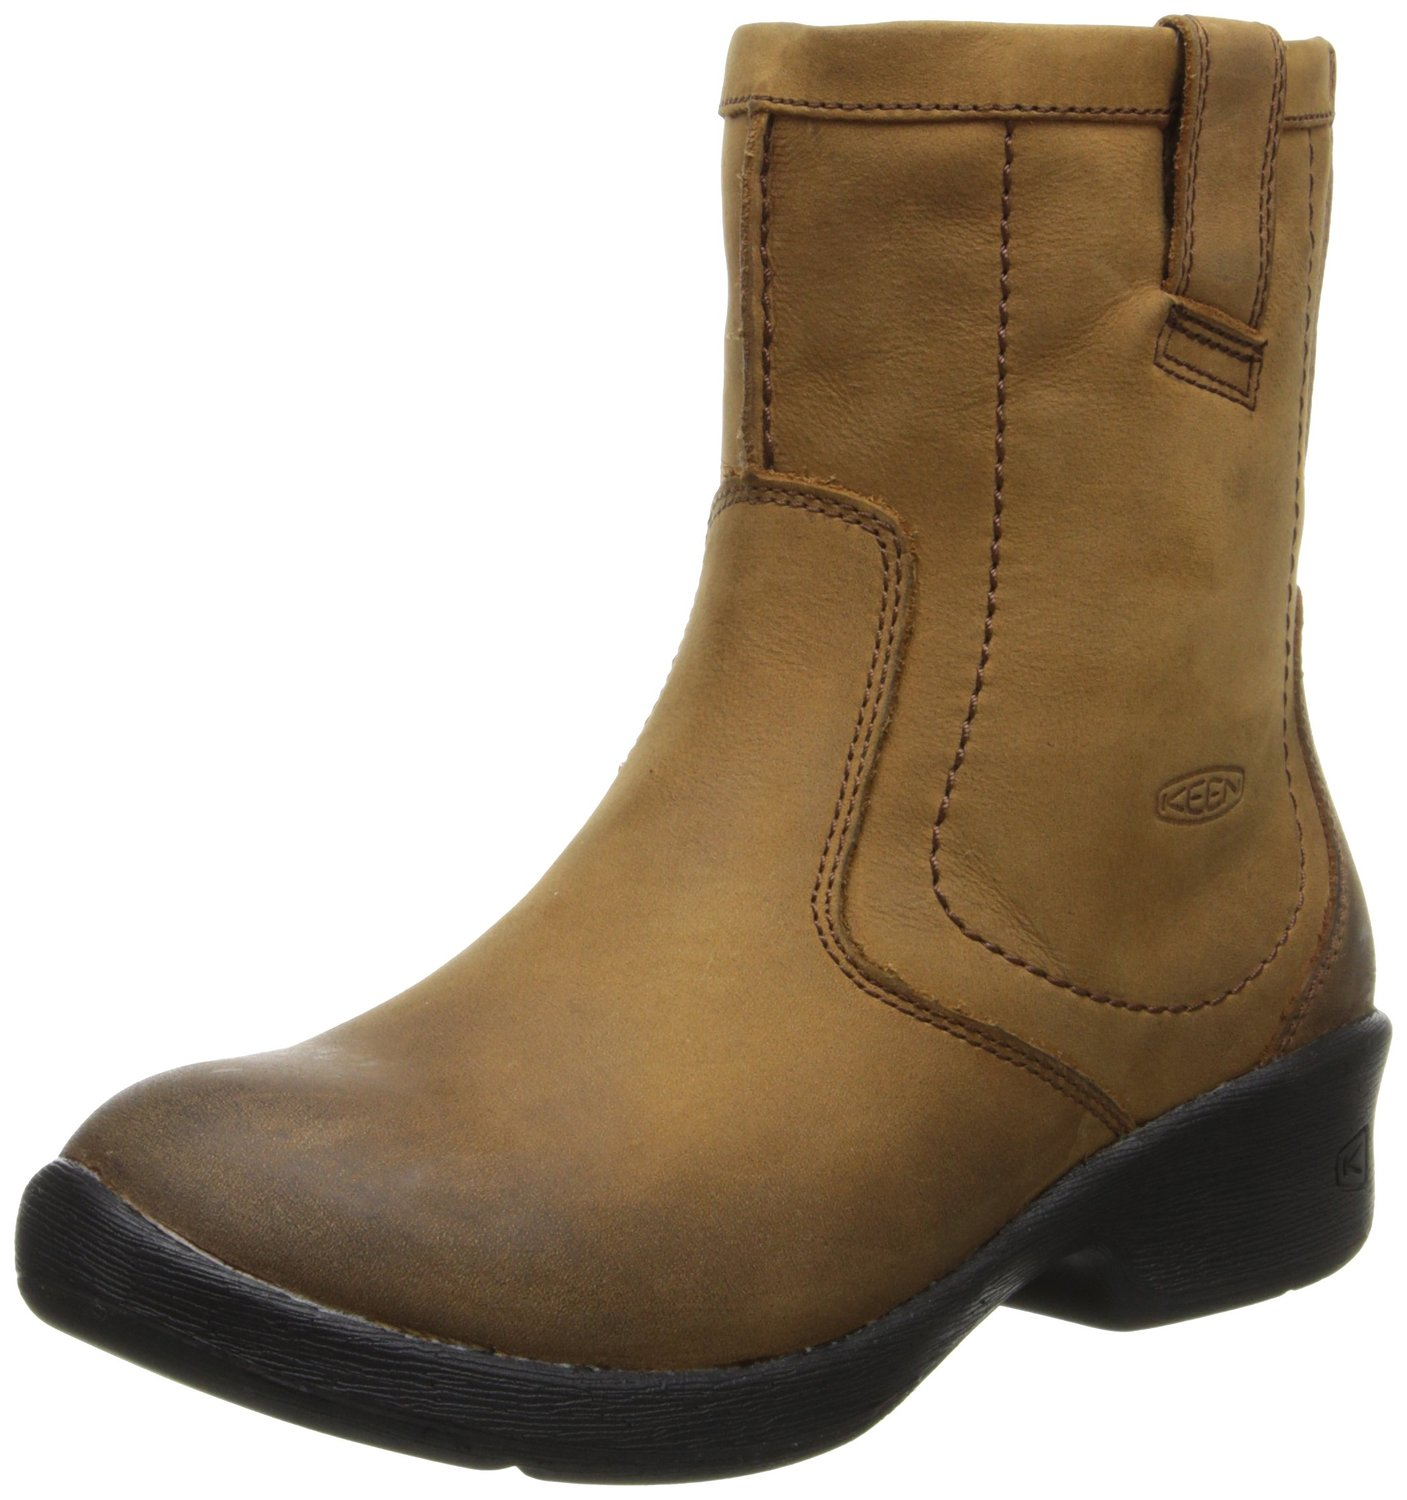 Find chelsea ankle boots at ShopStyle. Shop the latest collection of chelsea ankle boots from the most popular stores - all in one place. Skip to Content Chooka Bainbridge Chelsea Ankle Boot Women's Rain Boots $65 Get a Sale Alert Free Shipping & Free.